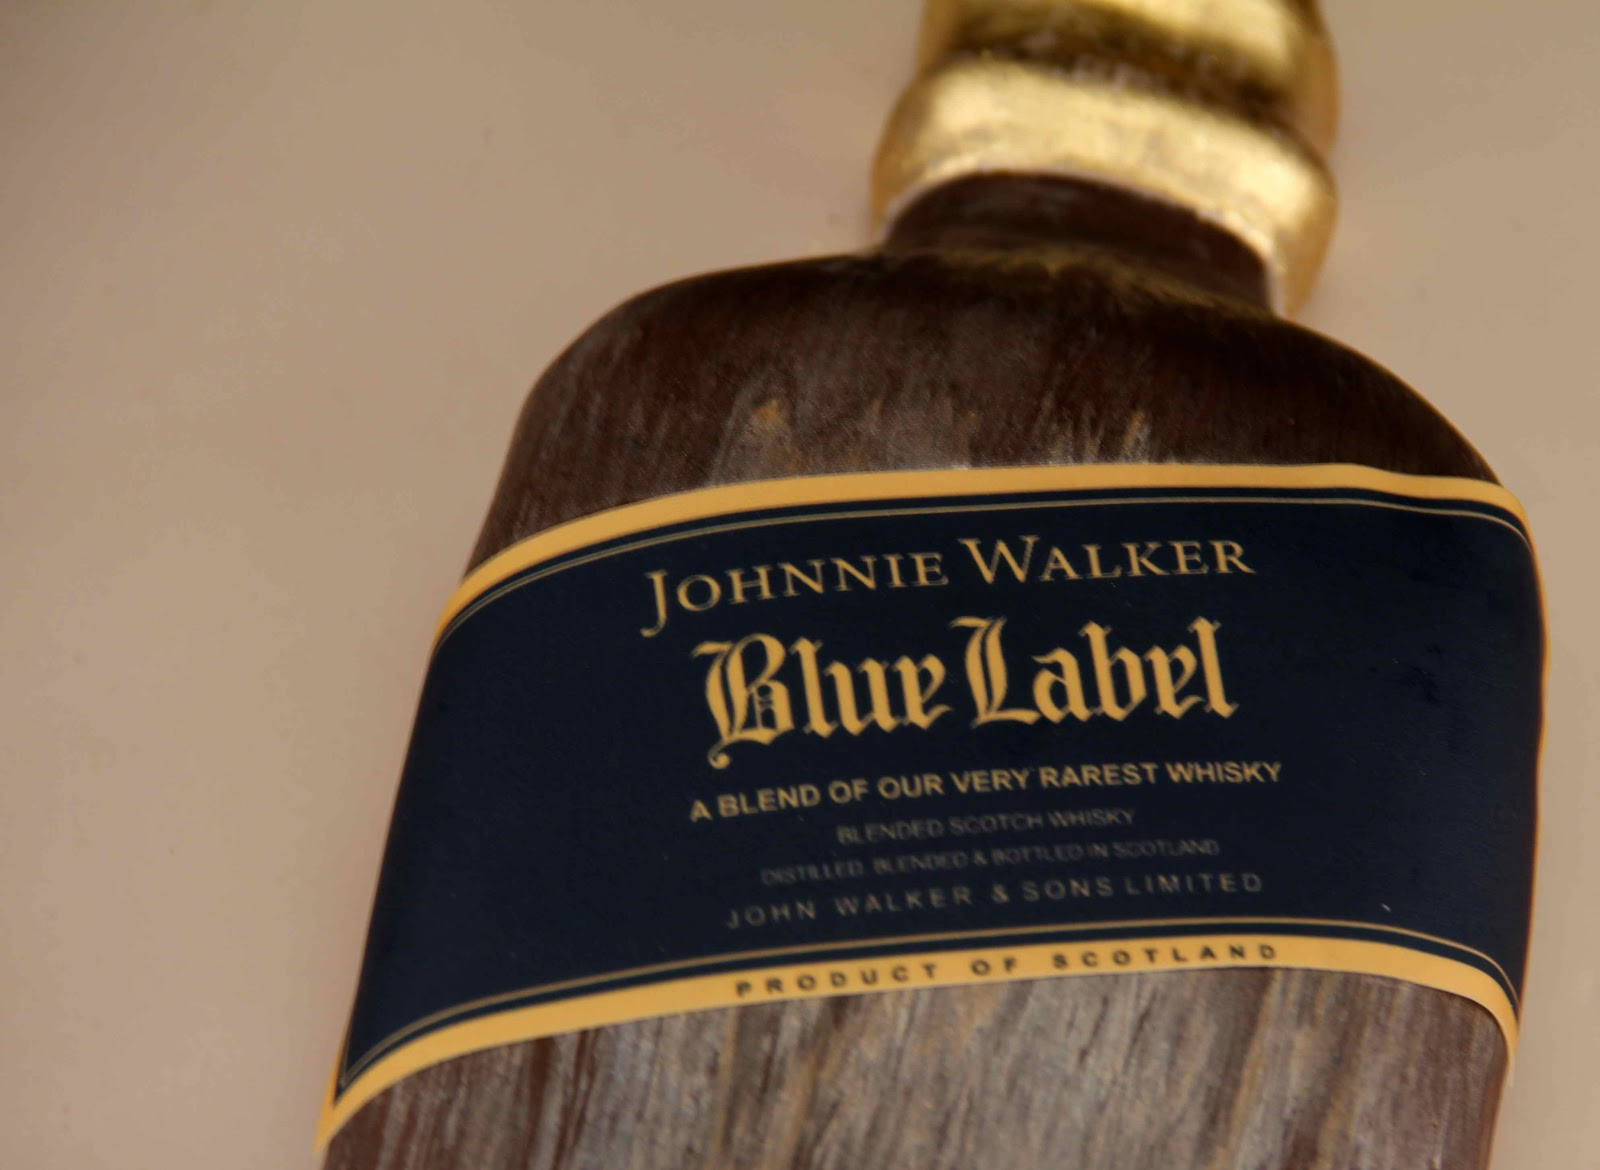 Johnnie Walker Blue Label Cake http://bakerzdad.blogspot.com/2012_09_01_archive.html